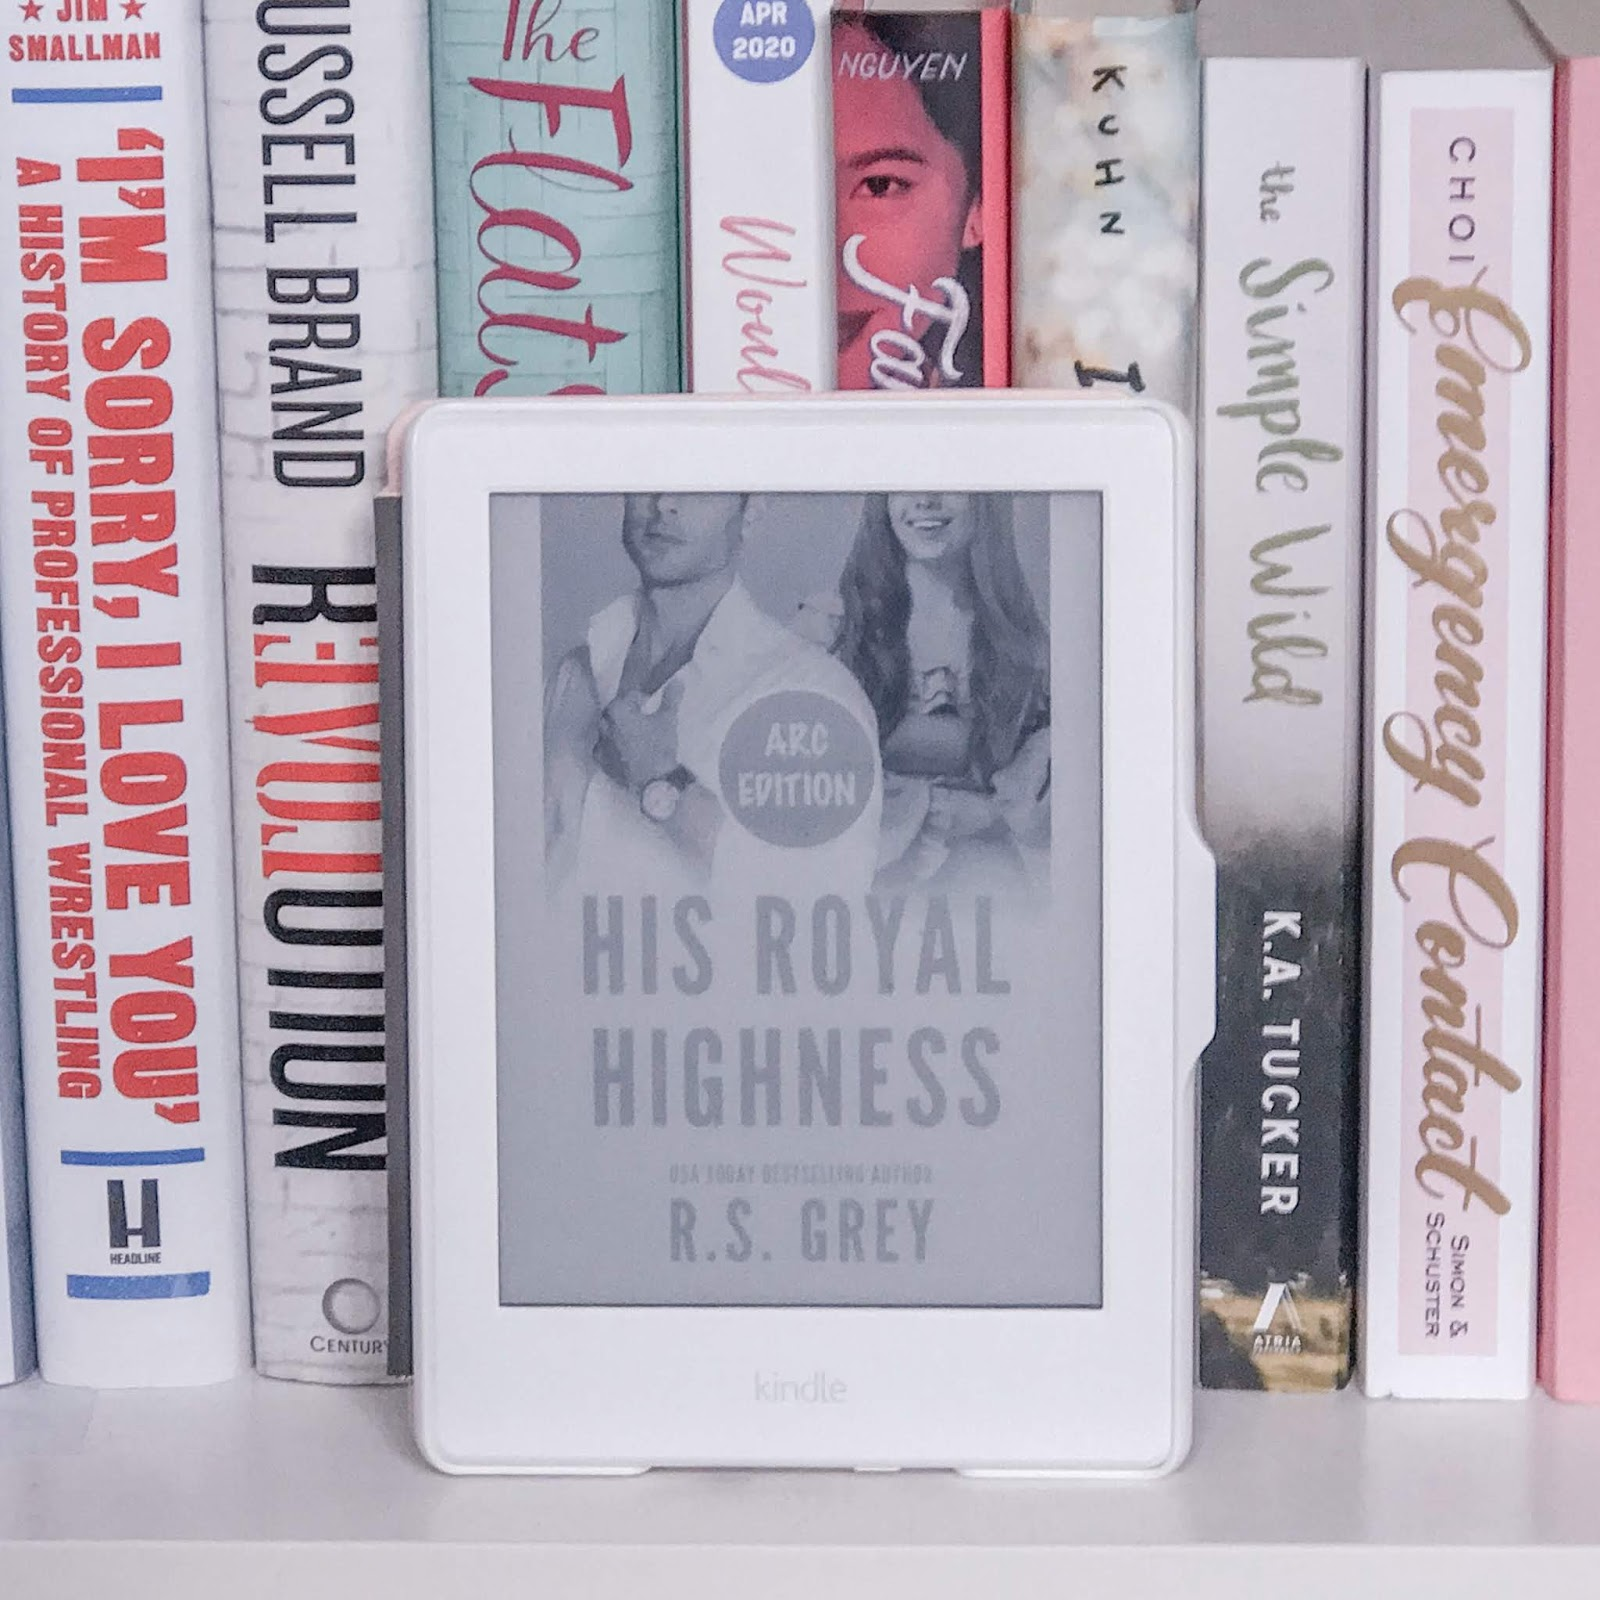 His Royal Highness - R.S Grey